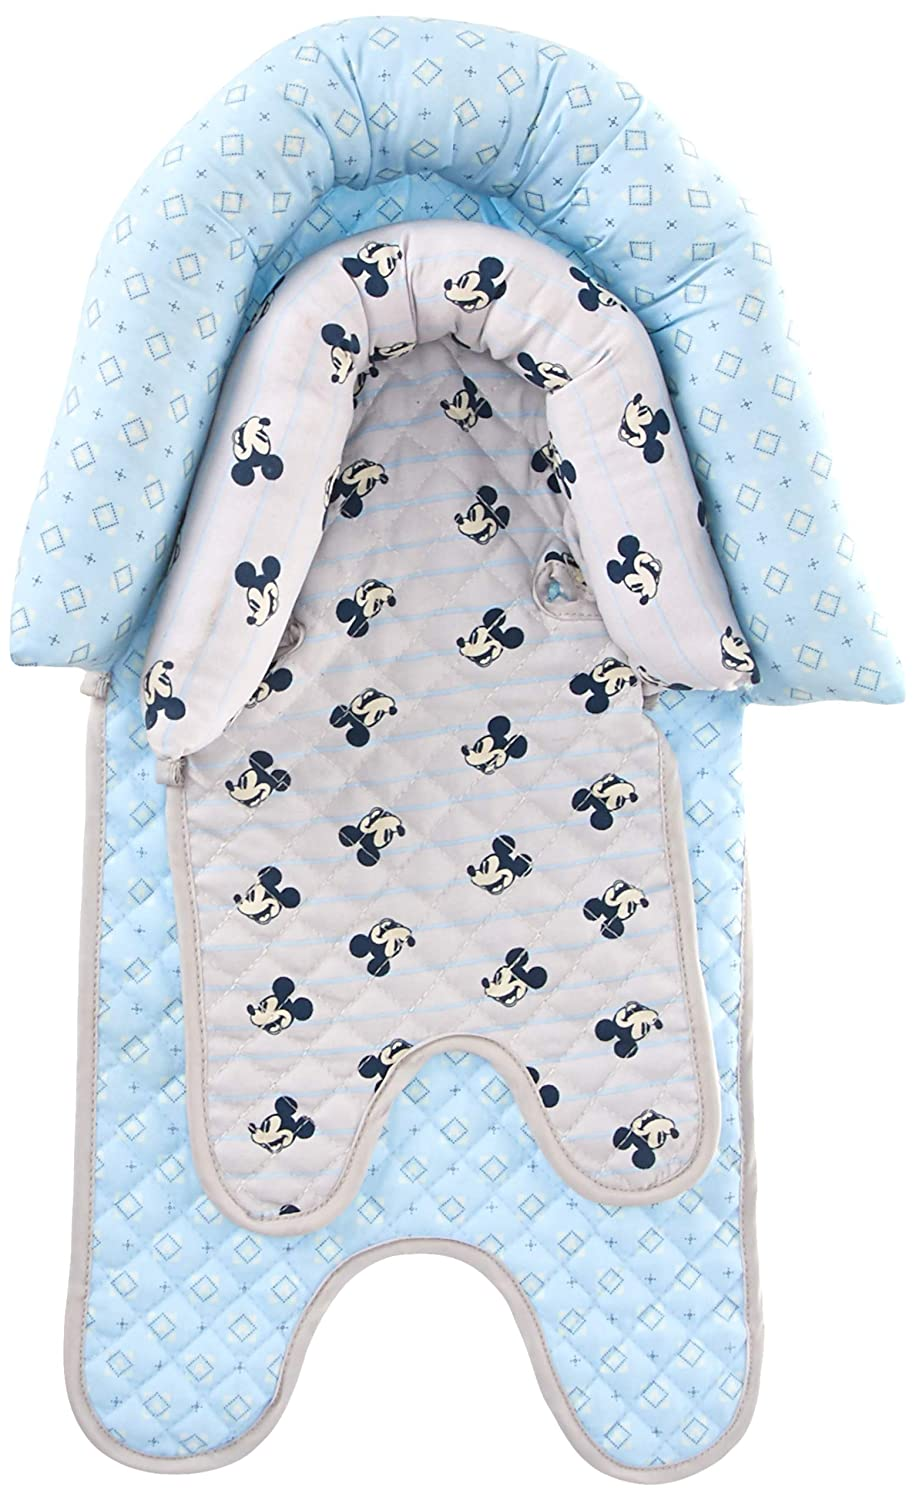 Strollers /& Bouncers Disney Mickey Mouse Baby Boys Infant Head Support for Car Seats Multi Mickey Print